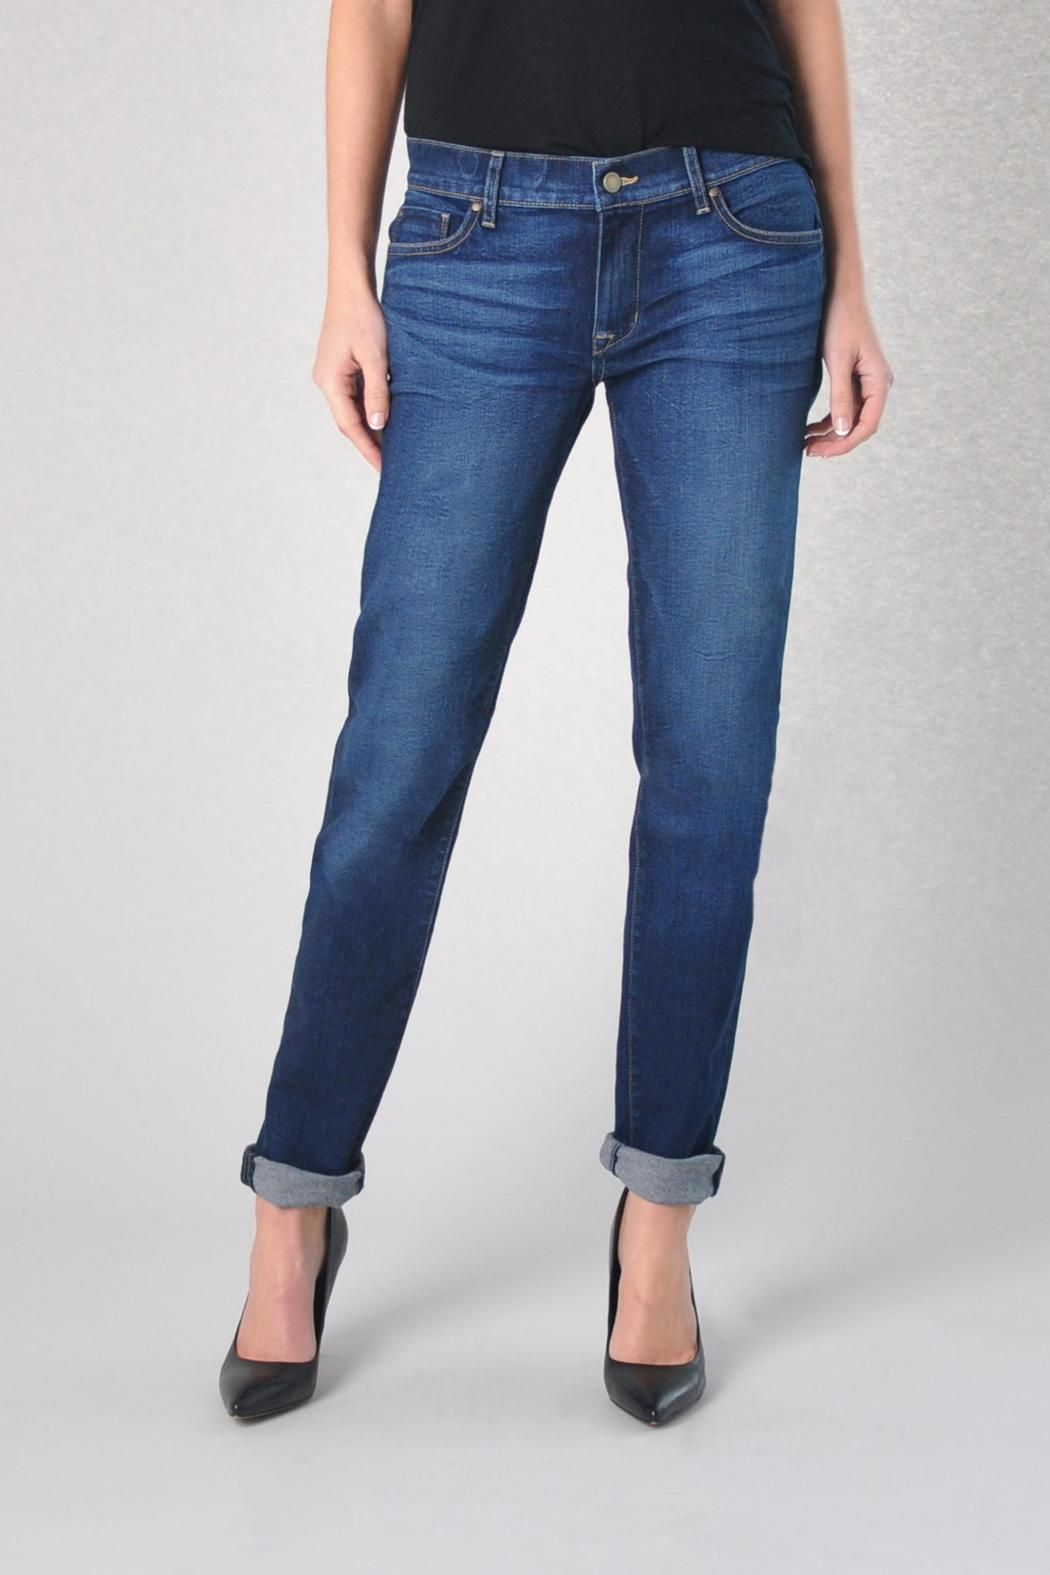 "The Axl relaxed skinny is Fidelity's twist on the traditional boyfriend jean. It is a low rise relaxed skinny that is fitted throughout the leg but slightly looser on the waist and hips.      Measures: 8.5 rise, 13"" sweep, 28"" rolled.   Relaxed Skinny Boyfriend Jeans by Fidelity Denim. Clothing - Bottoms - Jeans & Denim - Boyfriend Clothing - Bottoms - Jeans & Denim - Slim Clothing - Bottoms Canada"